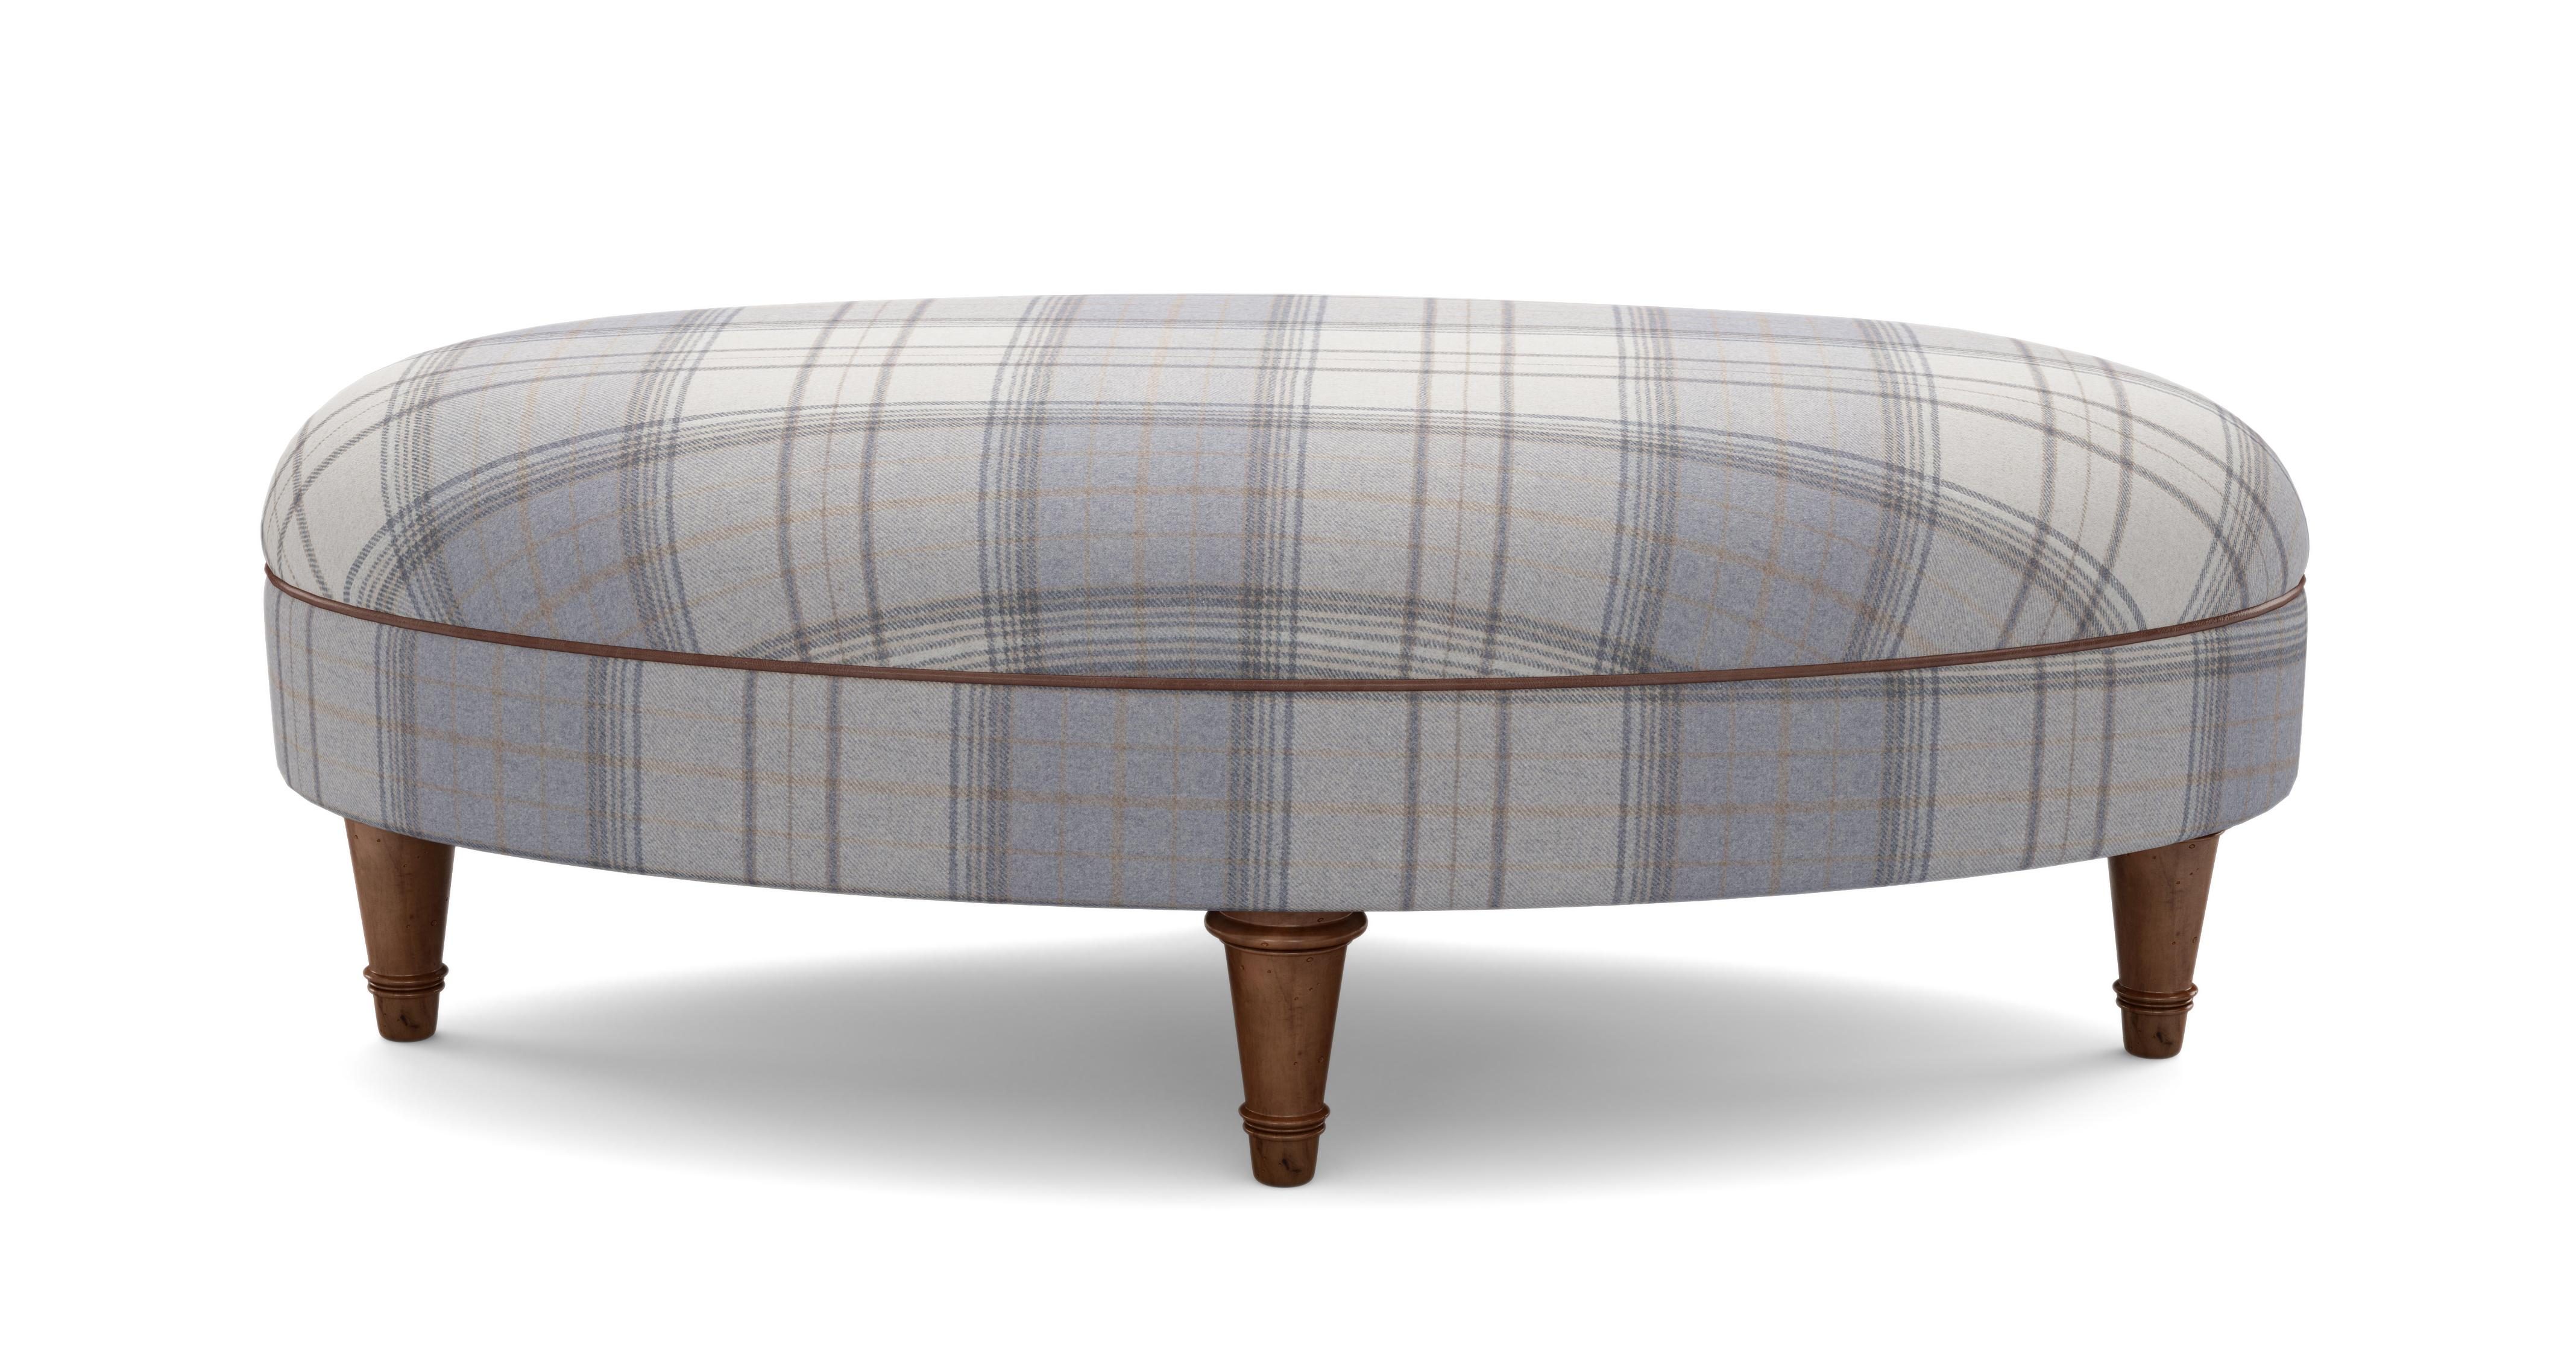 About The Moray Check Oval Footstool